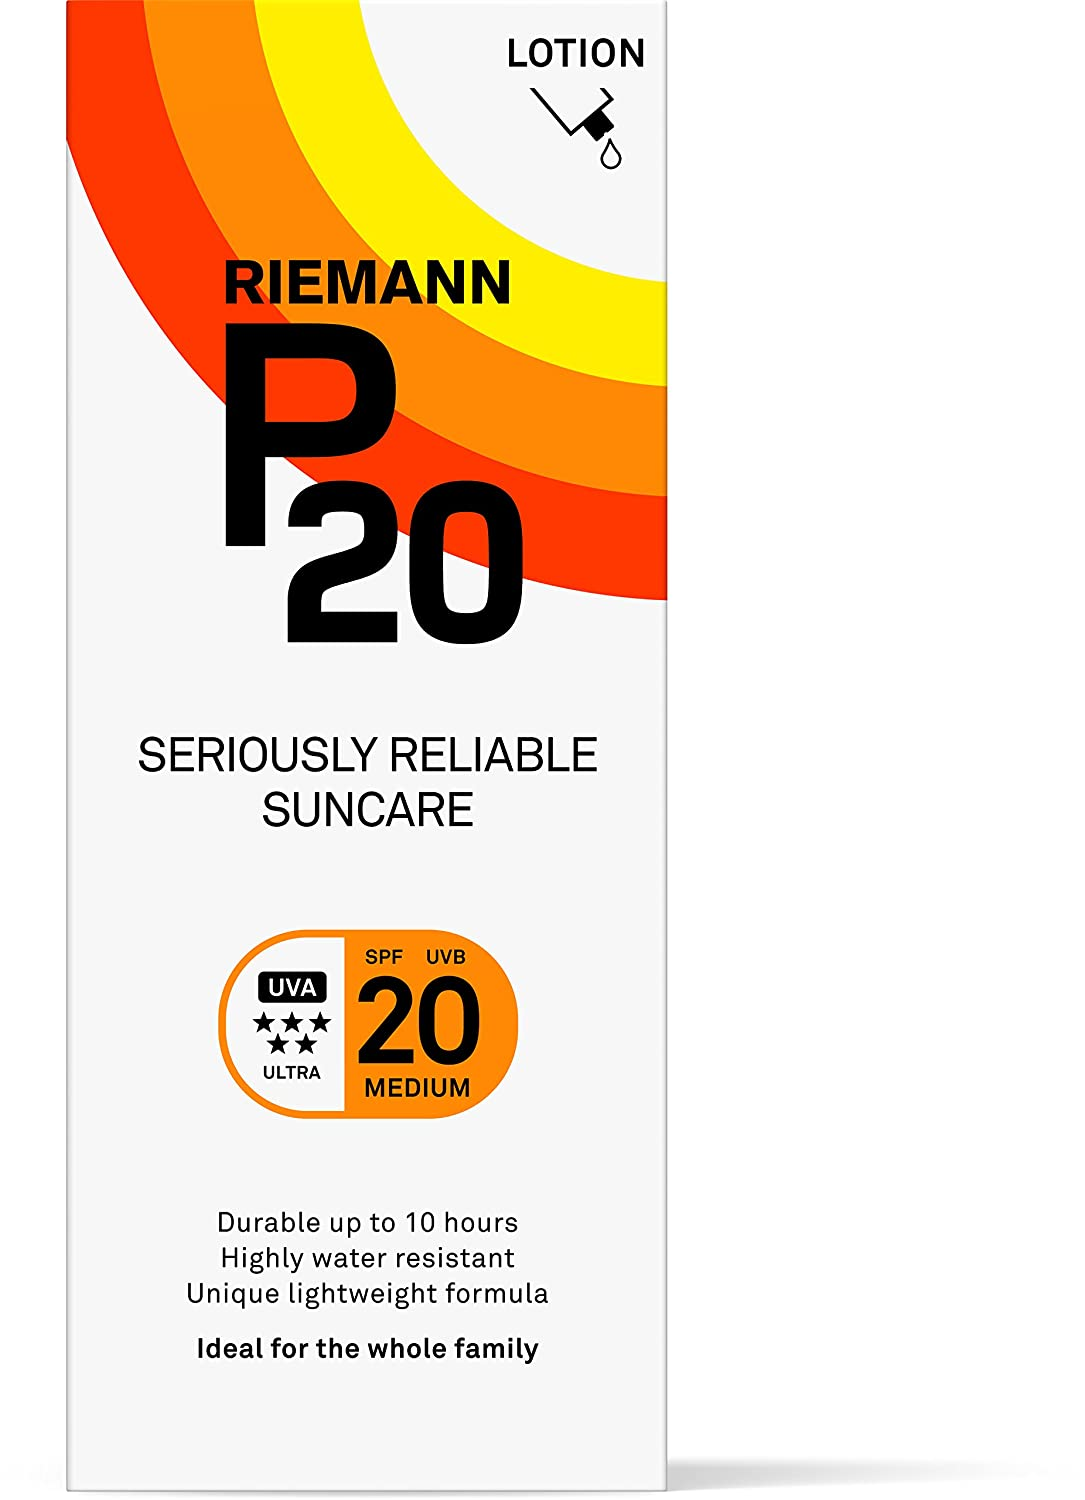 Riemann P20 Once a Day 10 Hours Protection SPF 20 Medium, 100ml 40015896